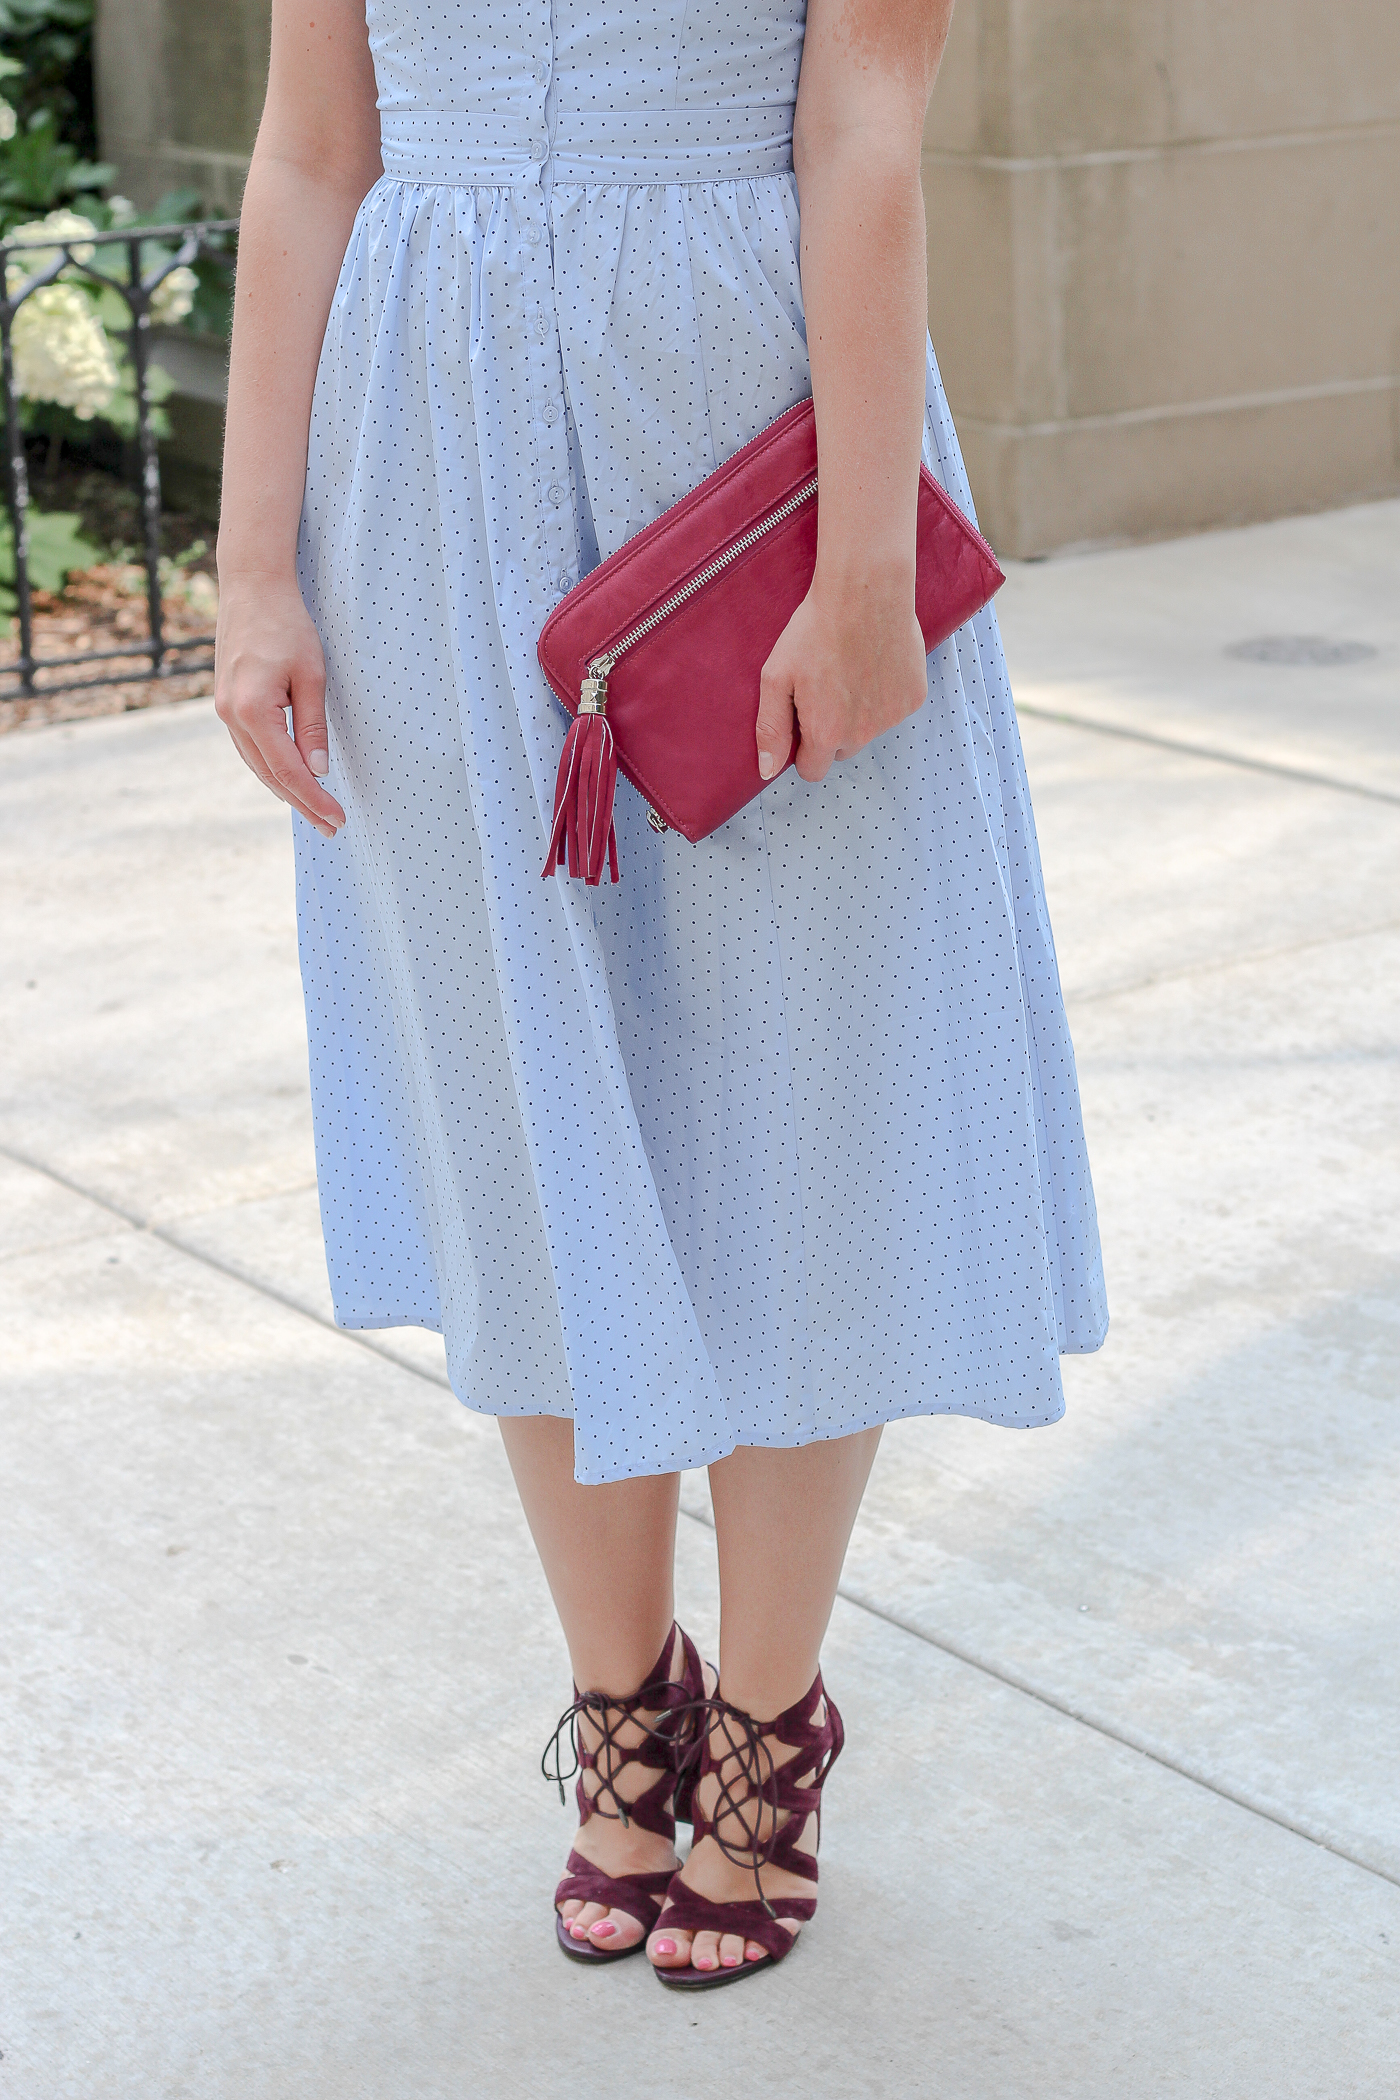 A cotton midi dress with lace up pumps for your movies at the park picnic